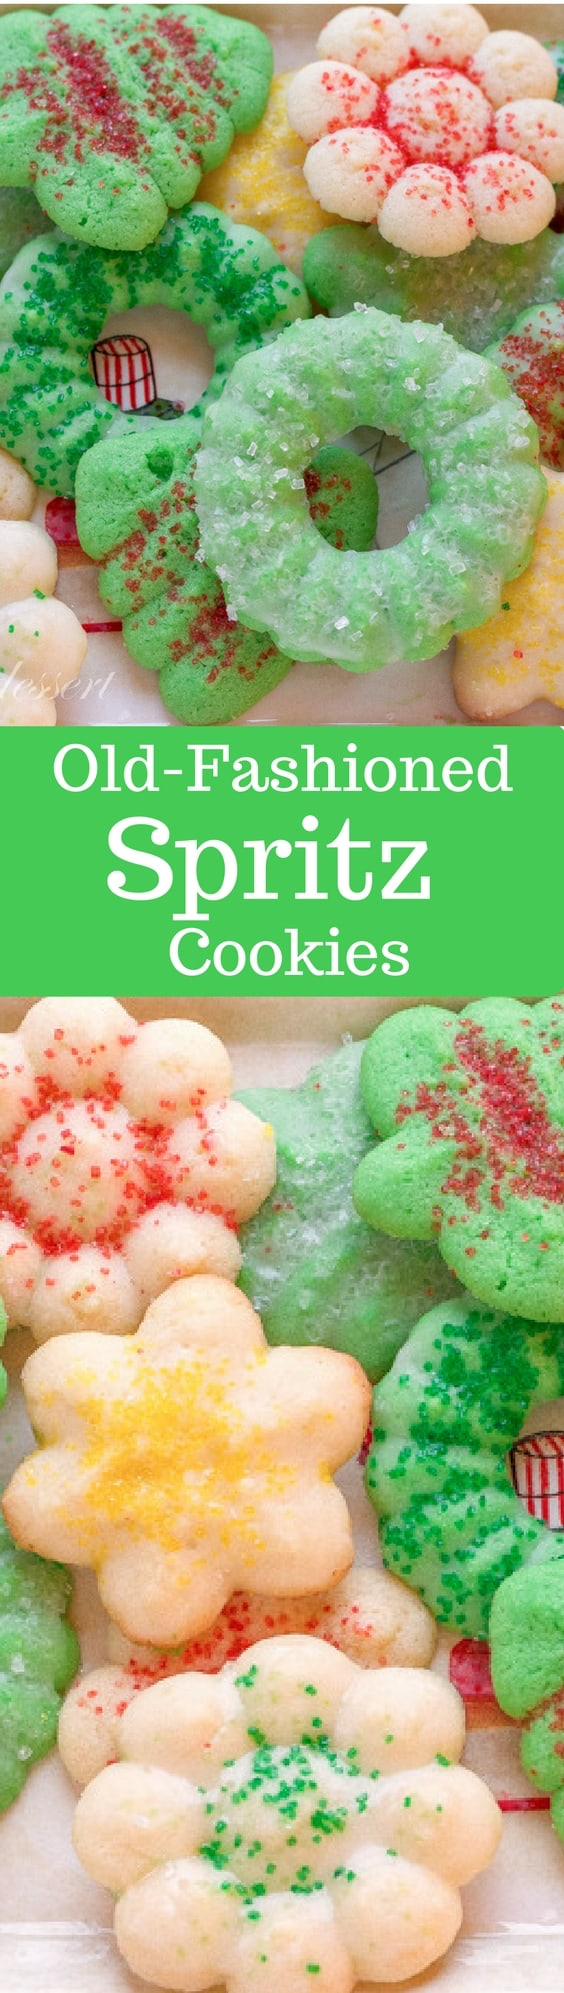 Old-Fashioned Spritz Cookies - a delicate, yet crisp, little cookie with a deep buttery flavor and a hint of almond. www.savingdessert.com